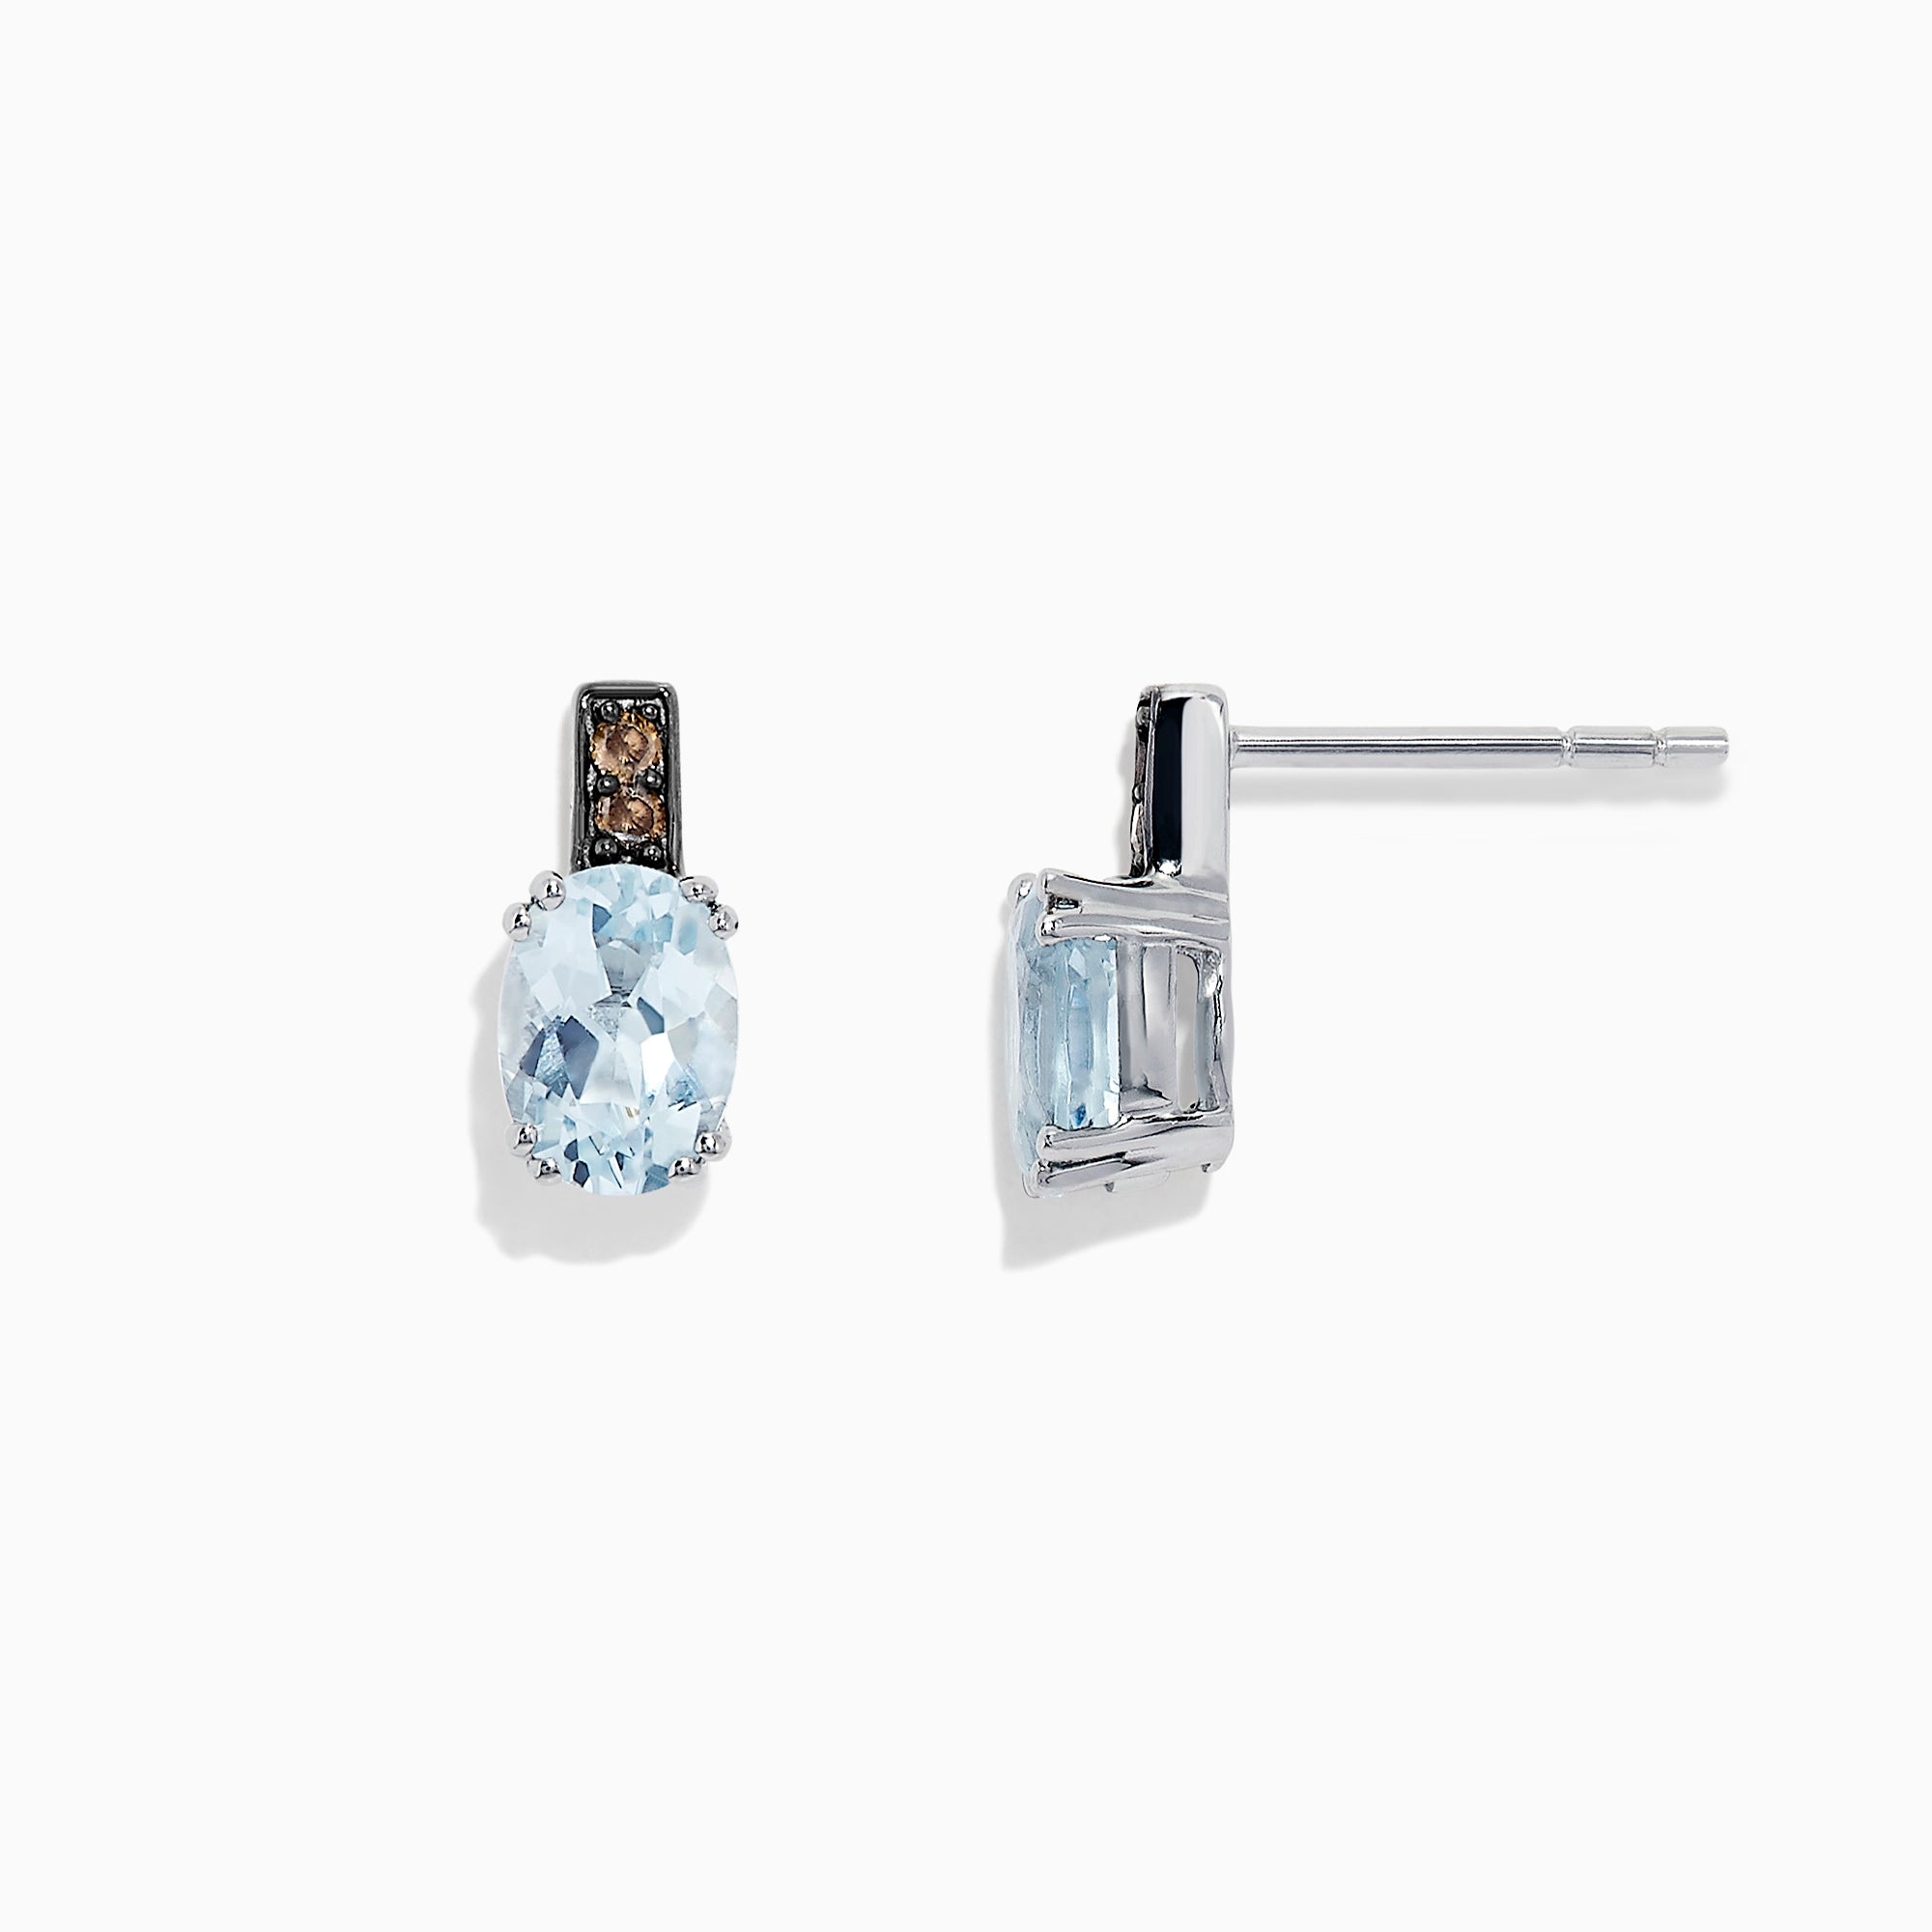 Effy 14K White Gold Aquamarine and Diamond Earrings, 1.58 TCW